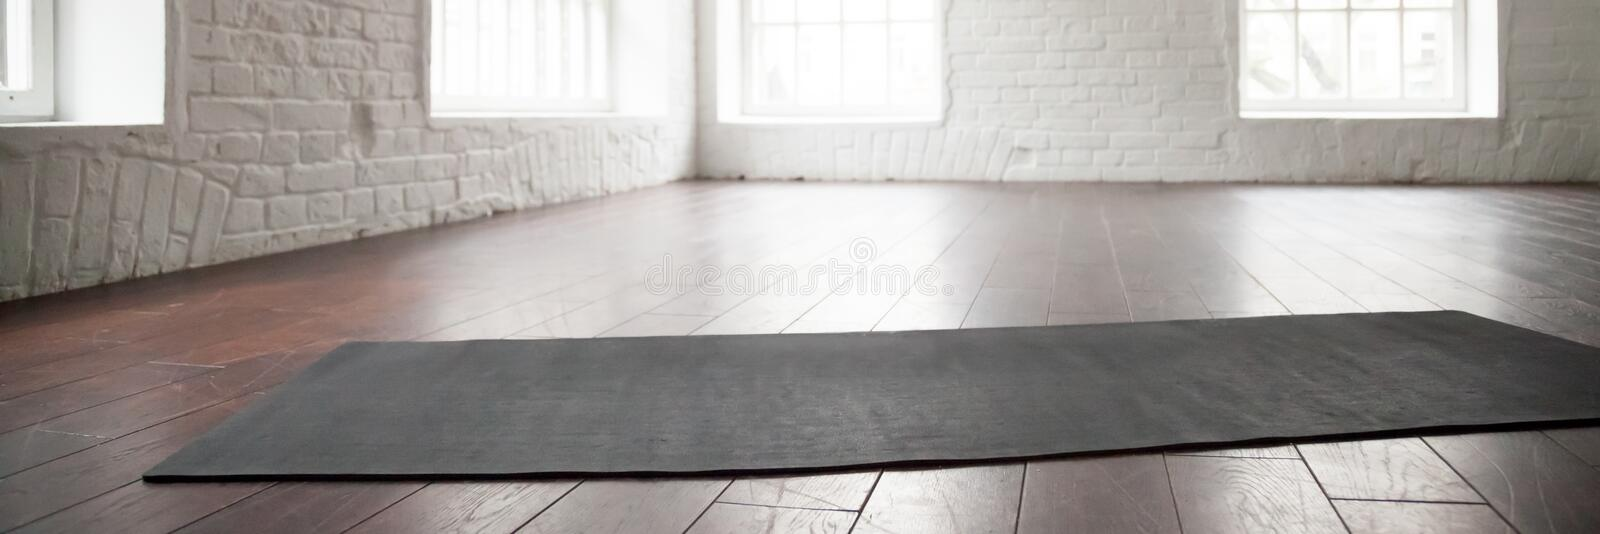 Horizontal photo yoga mat on wooden floor at sport club. Horizontal image personal yoga pilates rubber mat carpet on wooden floor at modern room of sport center royalty free stock image